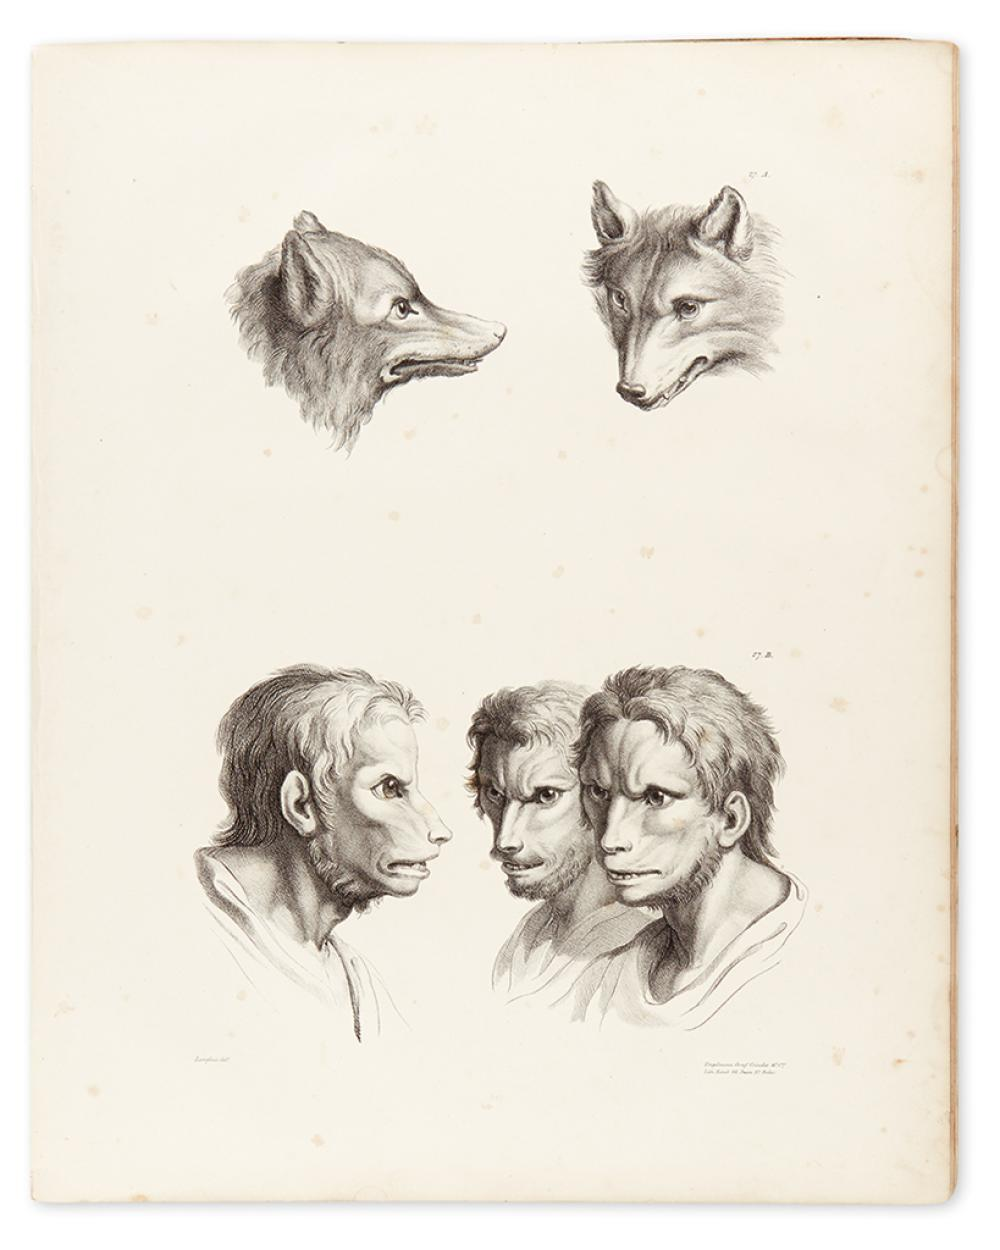 LE BRUN, CHARLES. A Series of Lithographic Drawings Illustrative of the Relation Between the Human Physiognomy